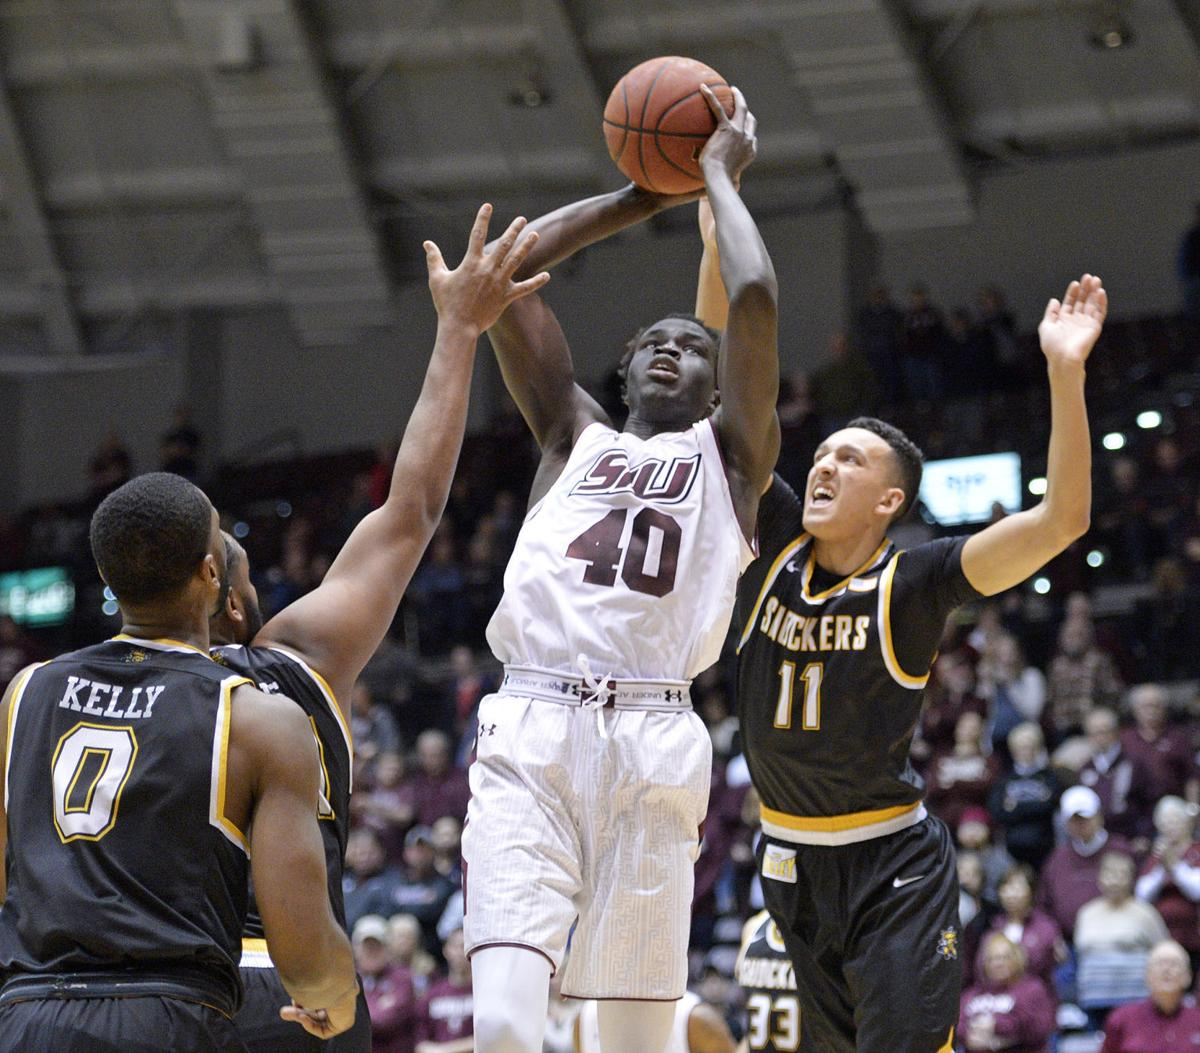 salukis bol out at least another 2 weeks maybe longer